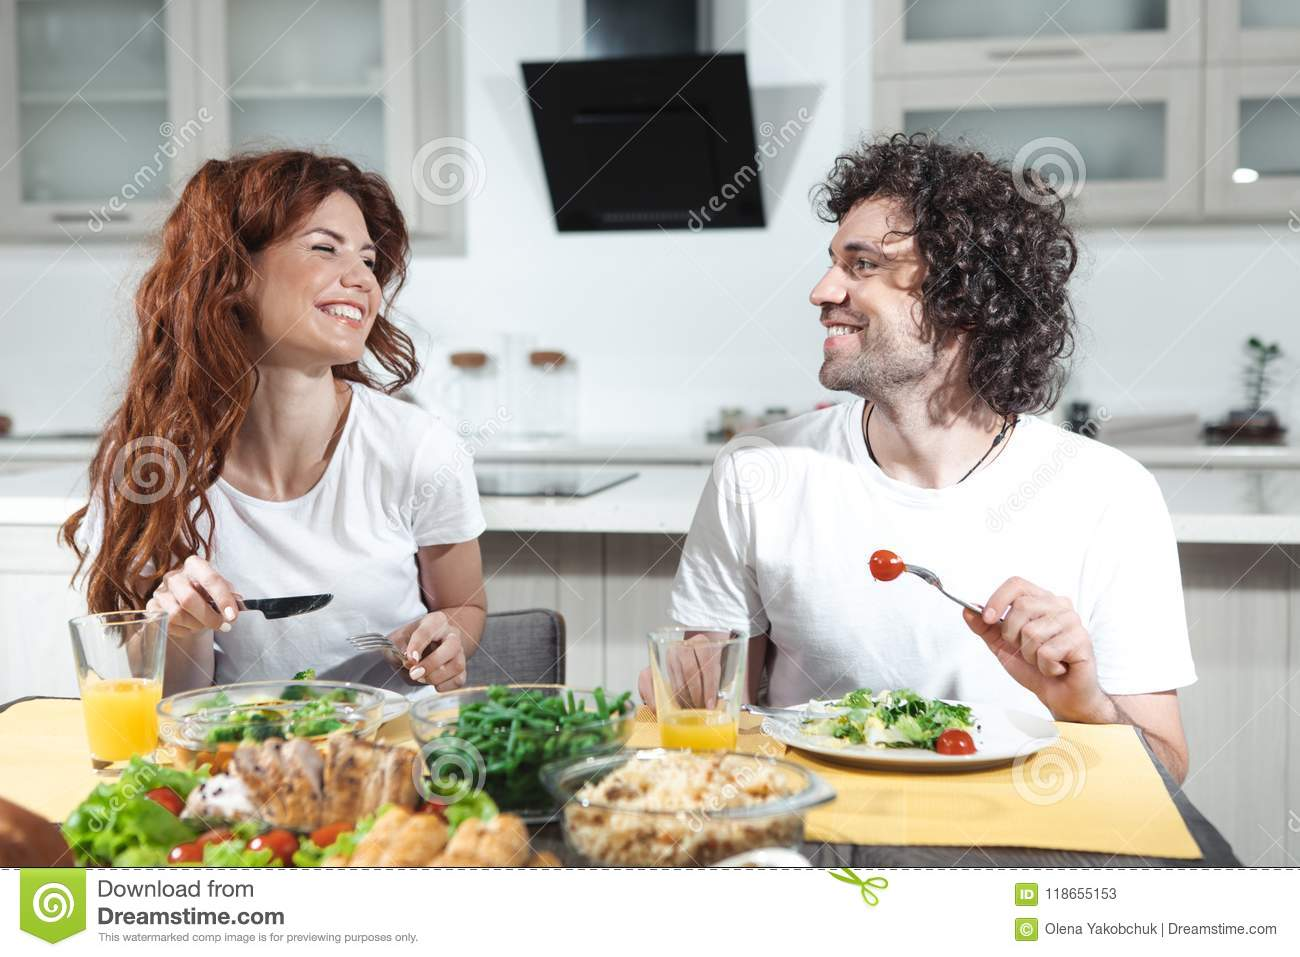 The Healthy, Happy Husband Diet The Healthy, Happy Husband Diet new photo